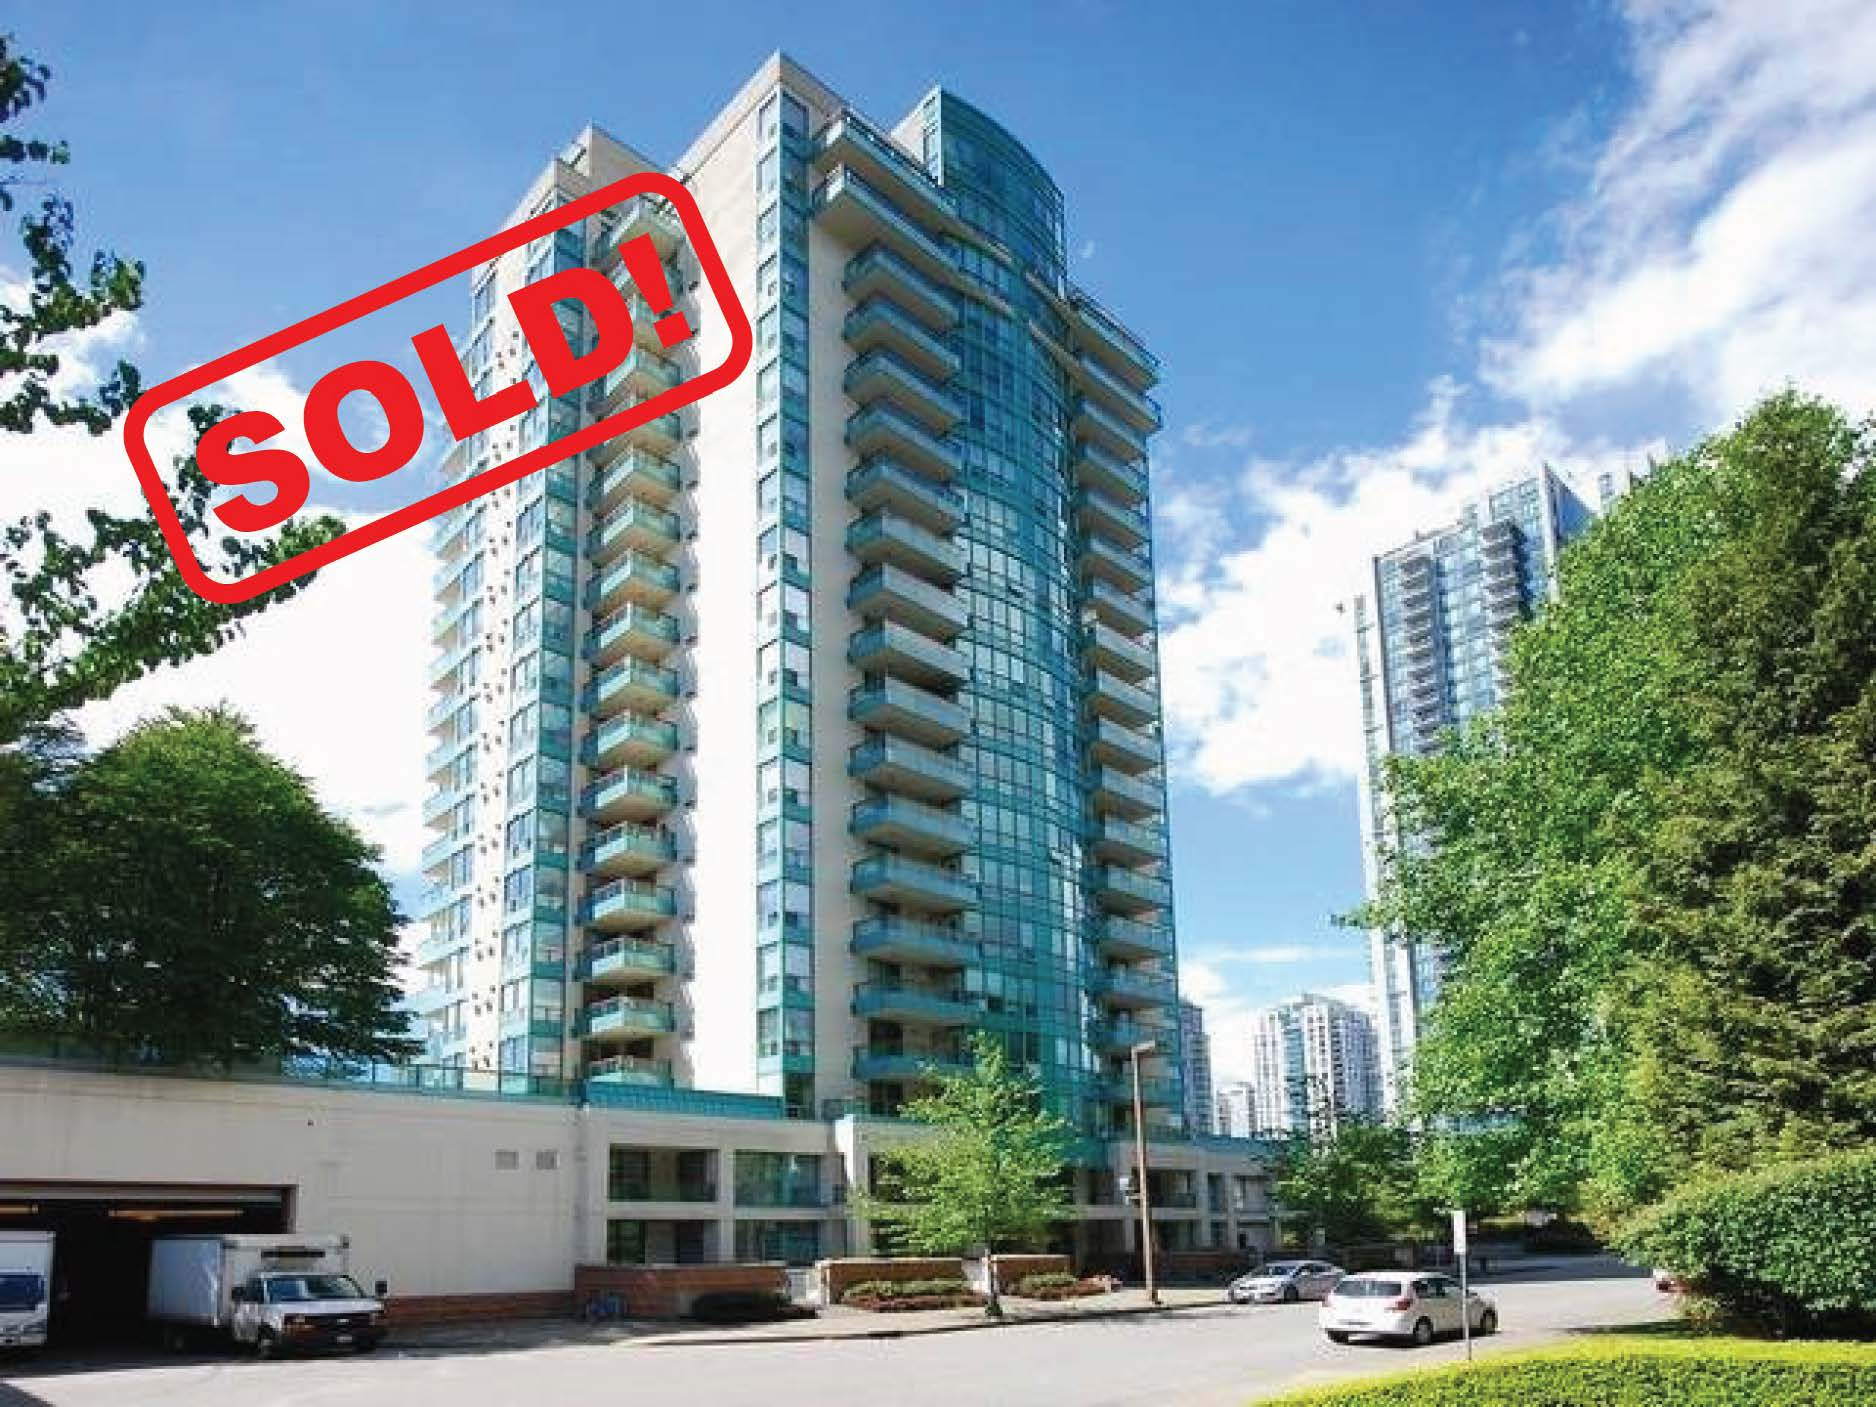 405-1148 HEFFLEY CRESCENT     SOLD FOR: $572,000  2 BED | 2 BATH | 847 SF